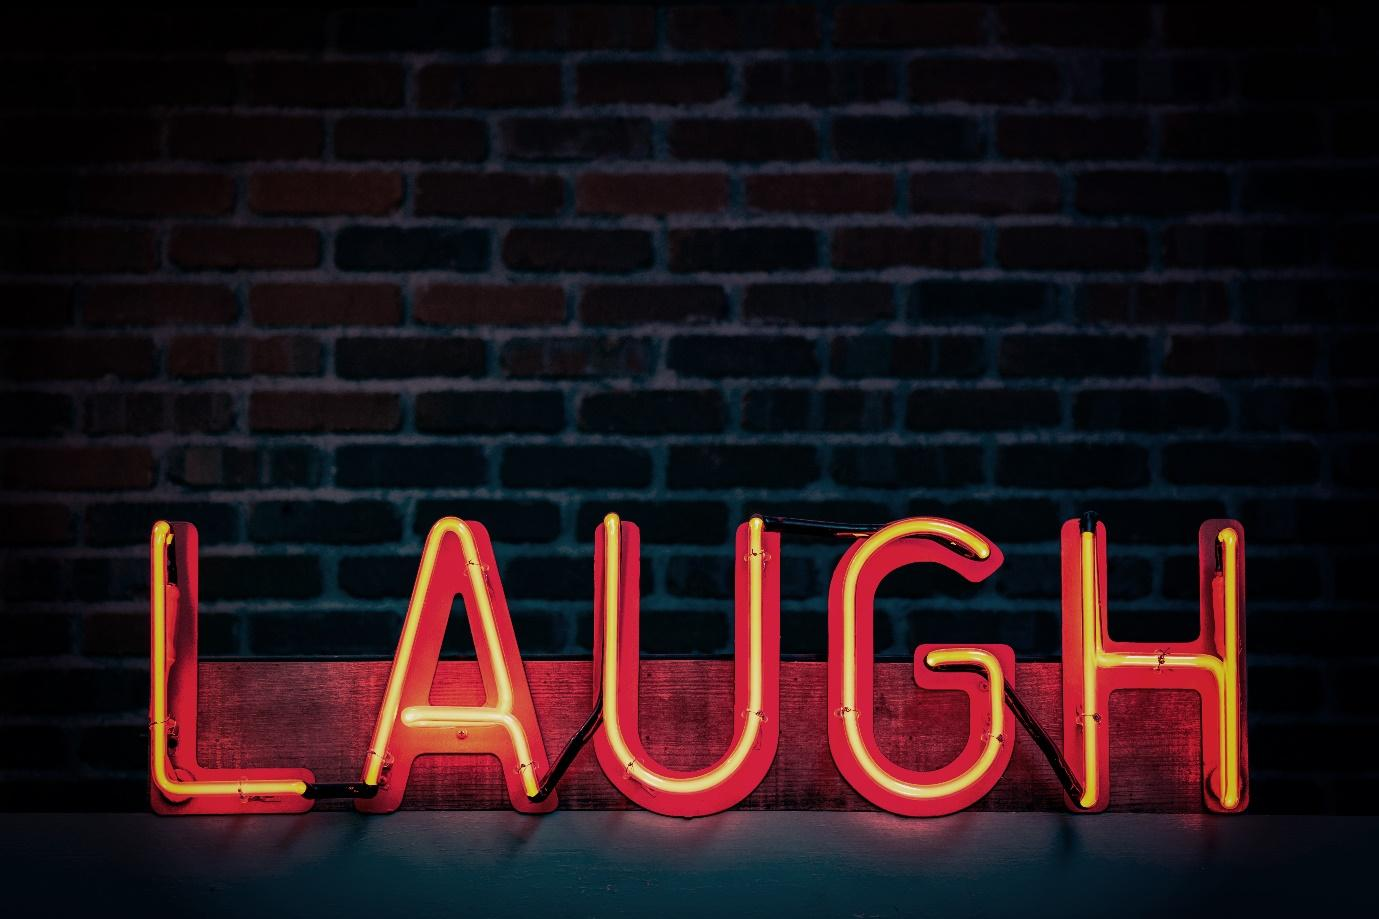 LAUGH red neon sign